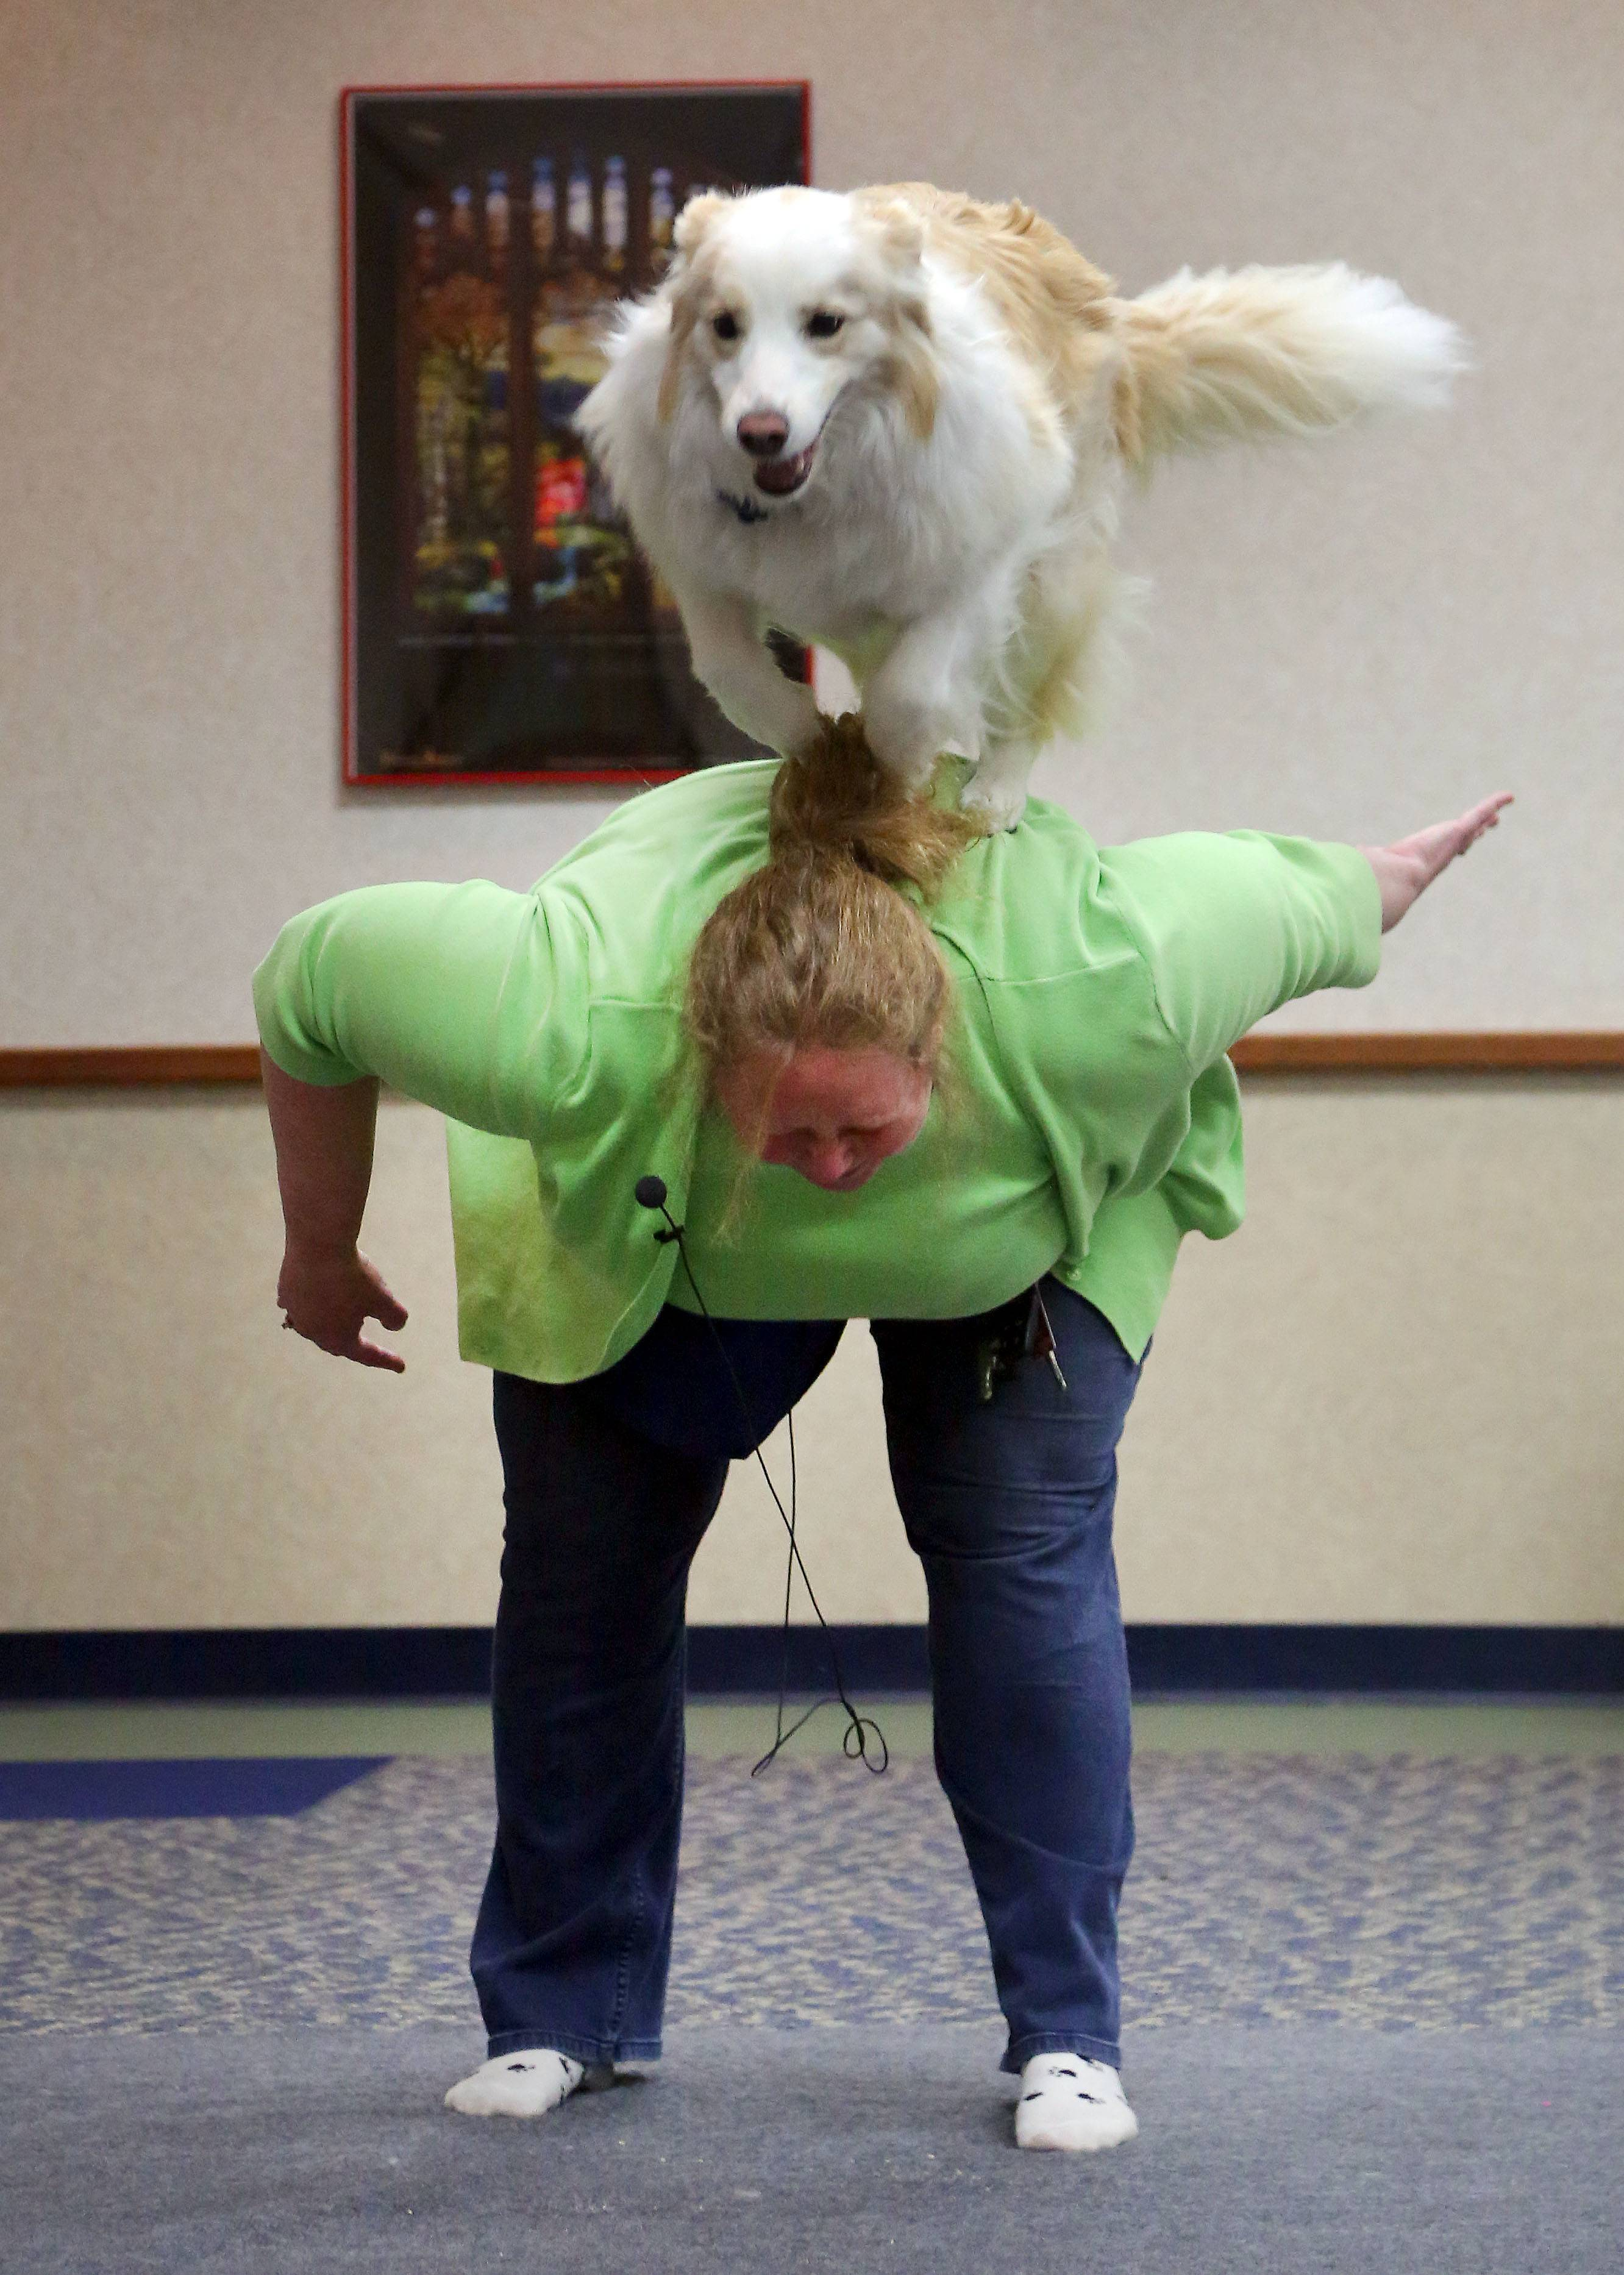 Cedar, a border collie, jumps over the back of dog trainer Robin Bengston on Monday at the Fremont Public Library in Mundelein.